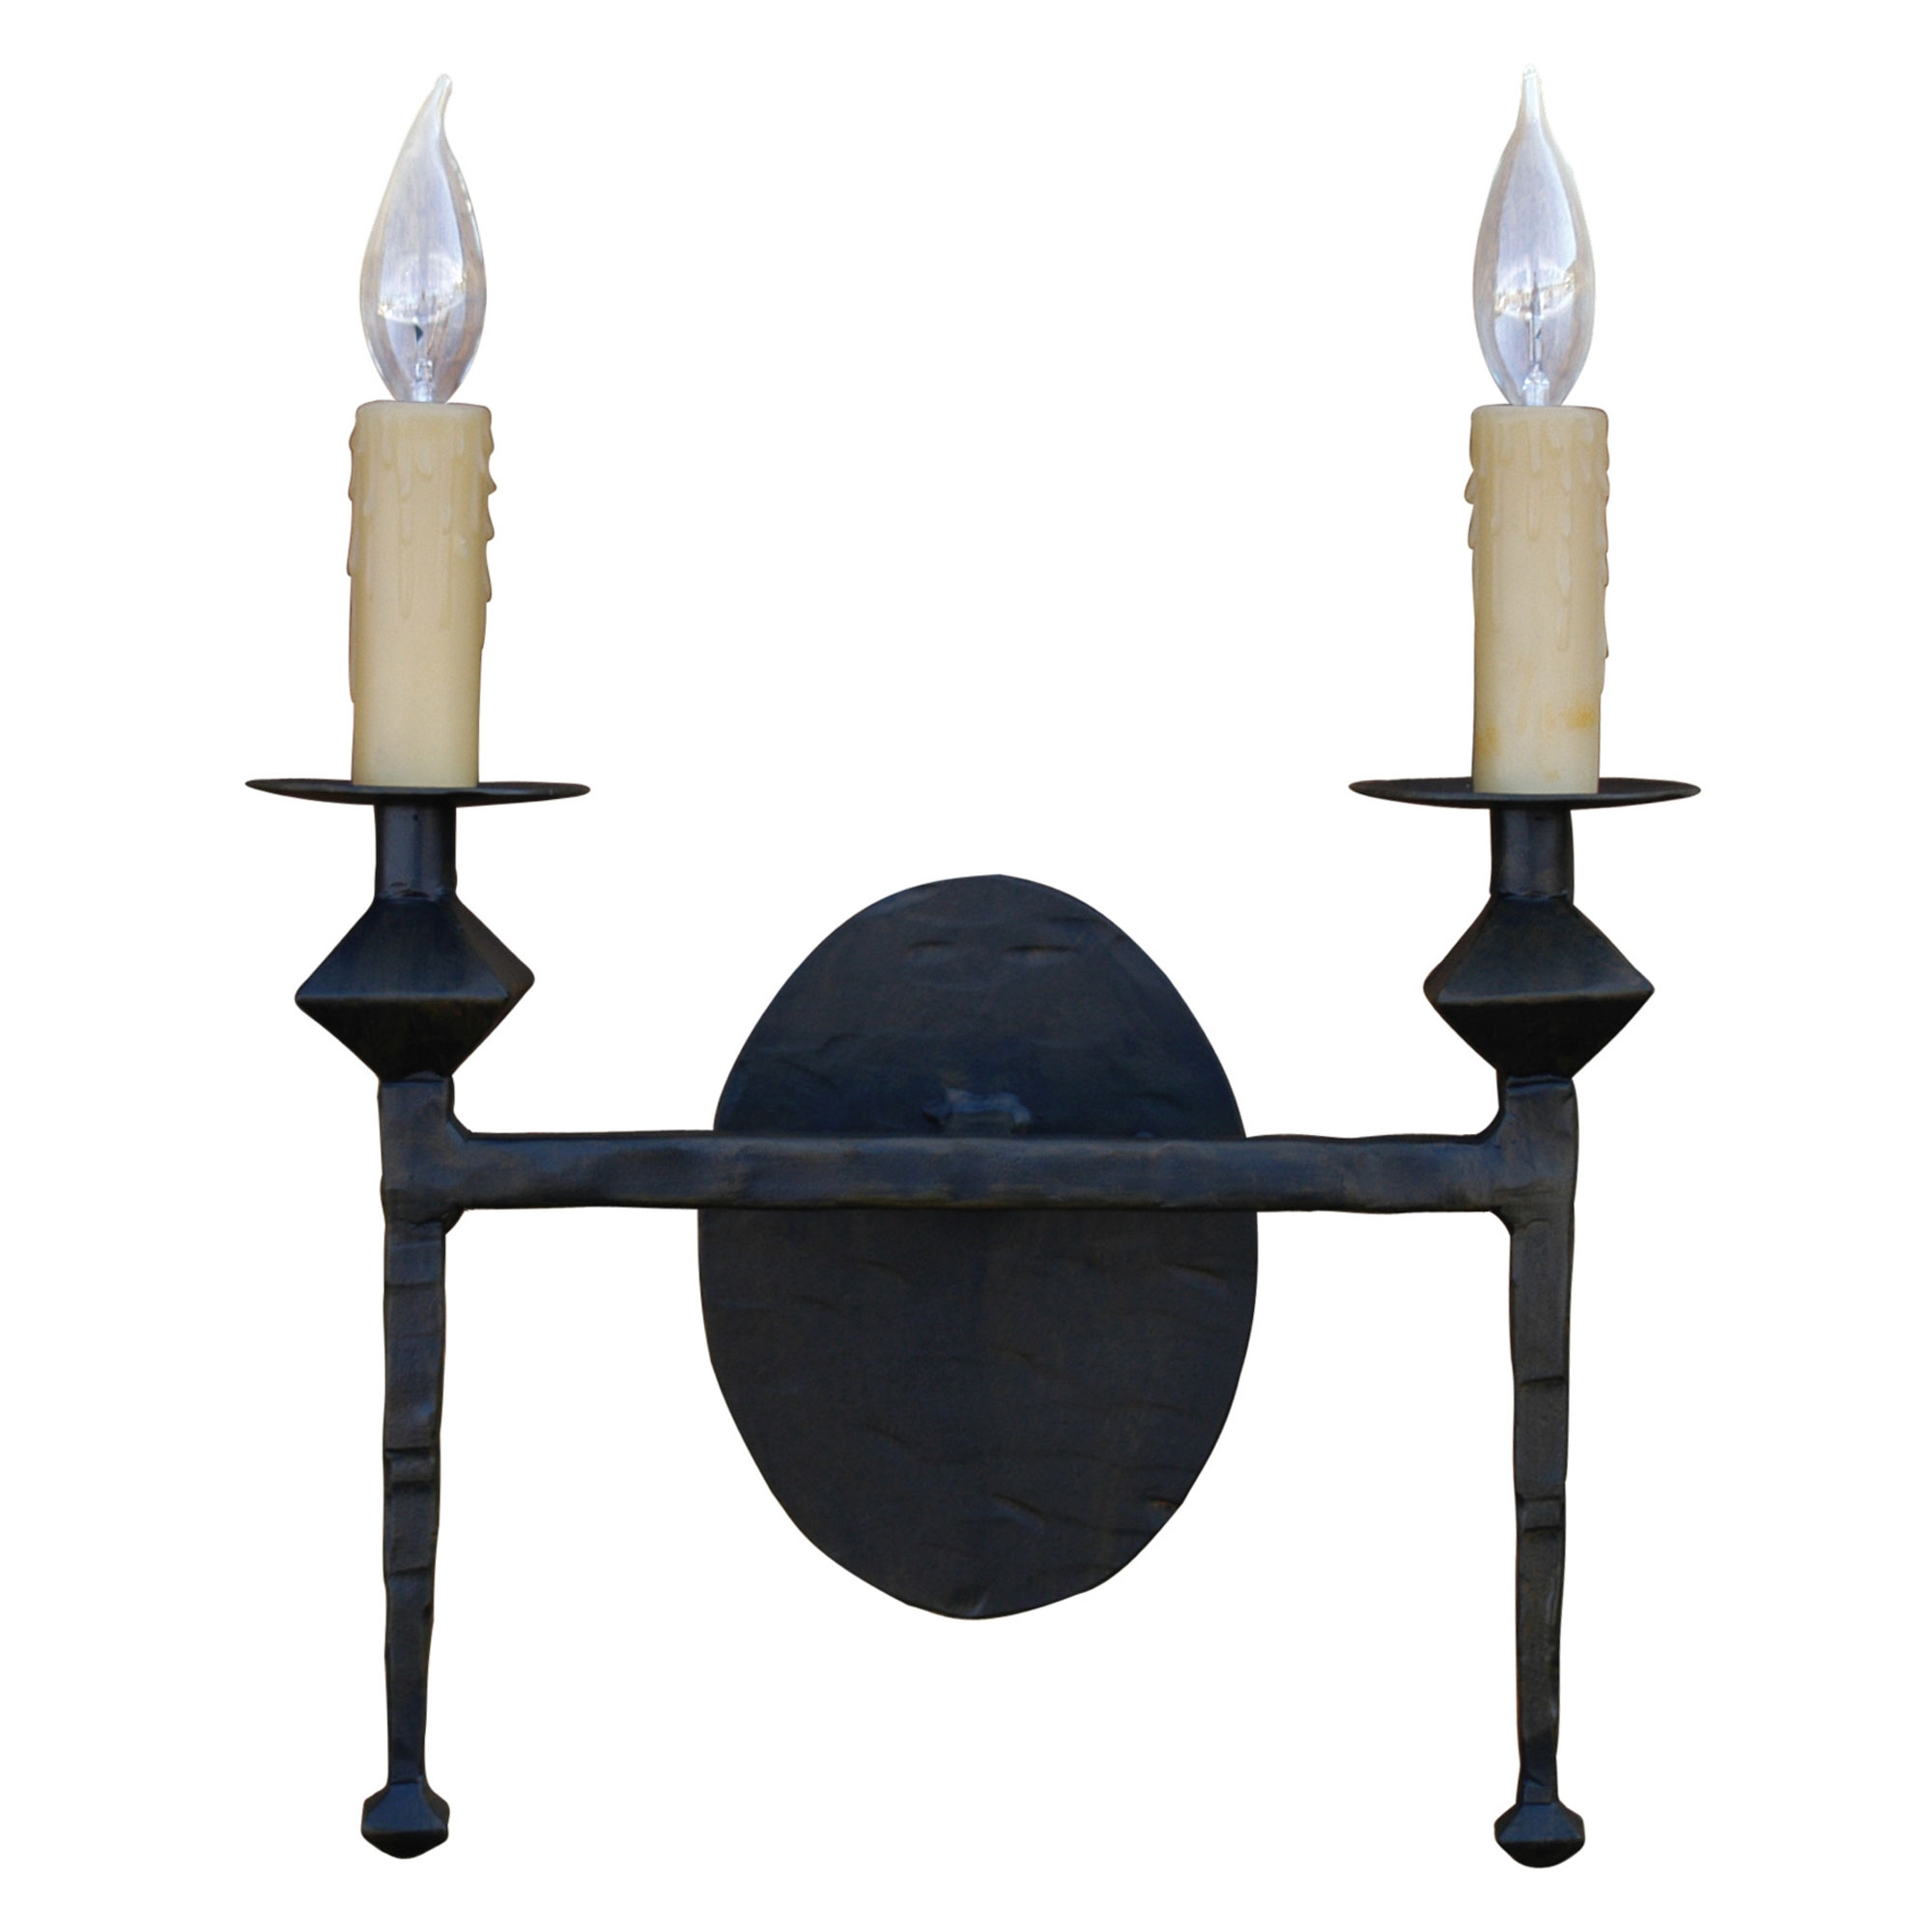 Wall Sconce Candle Covers : Forest Hill Wall Sconce Double w/ Drip Candle Cover